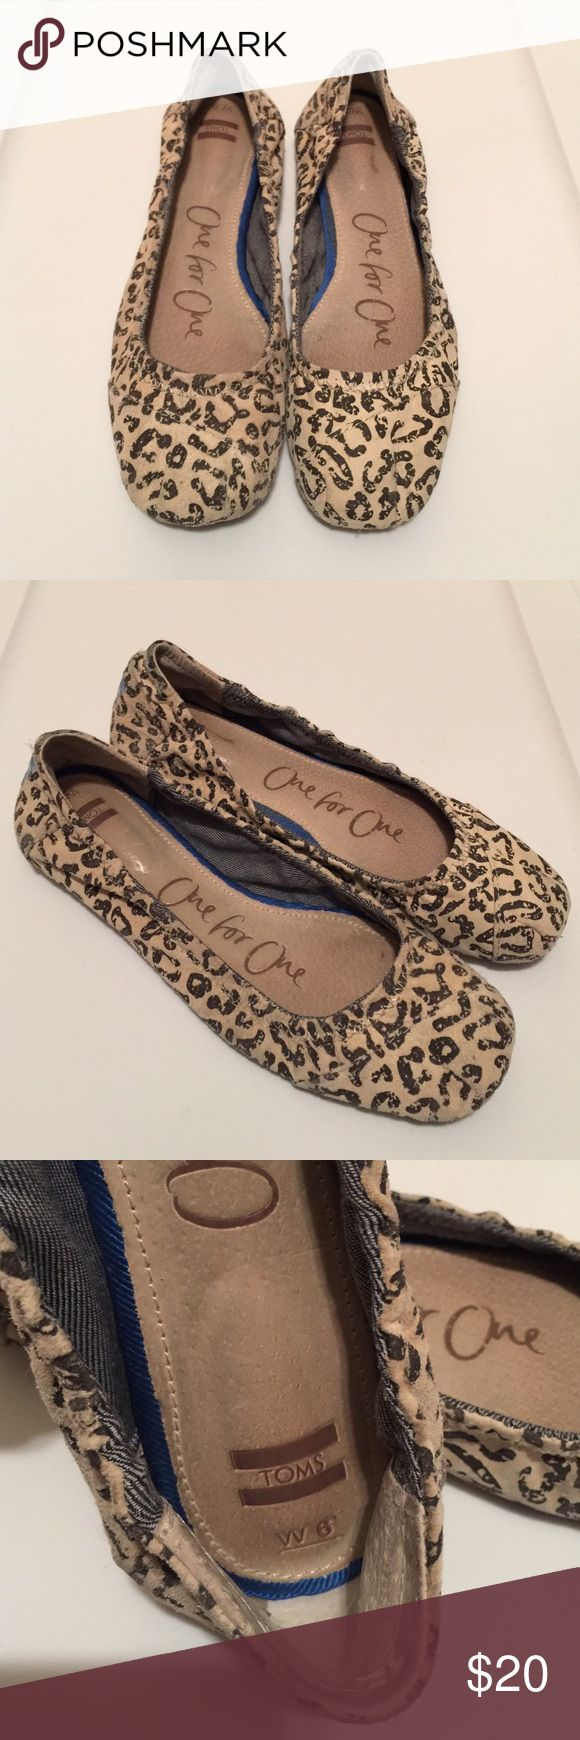 TOMS Ballerina Flats TOMS Ballerina Flats, Leopard Print! Pre-loved. Size 6 🚫NO TRADES TOMS Shoes